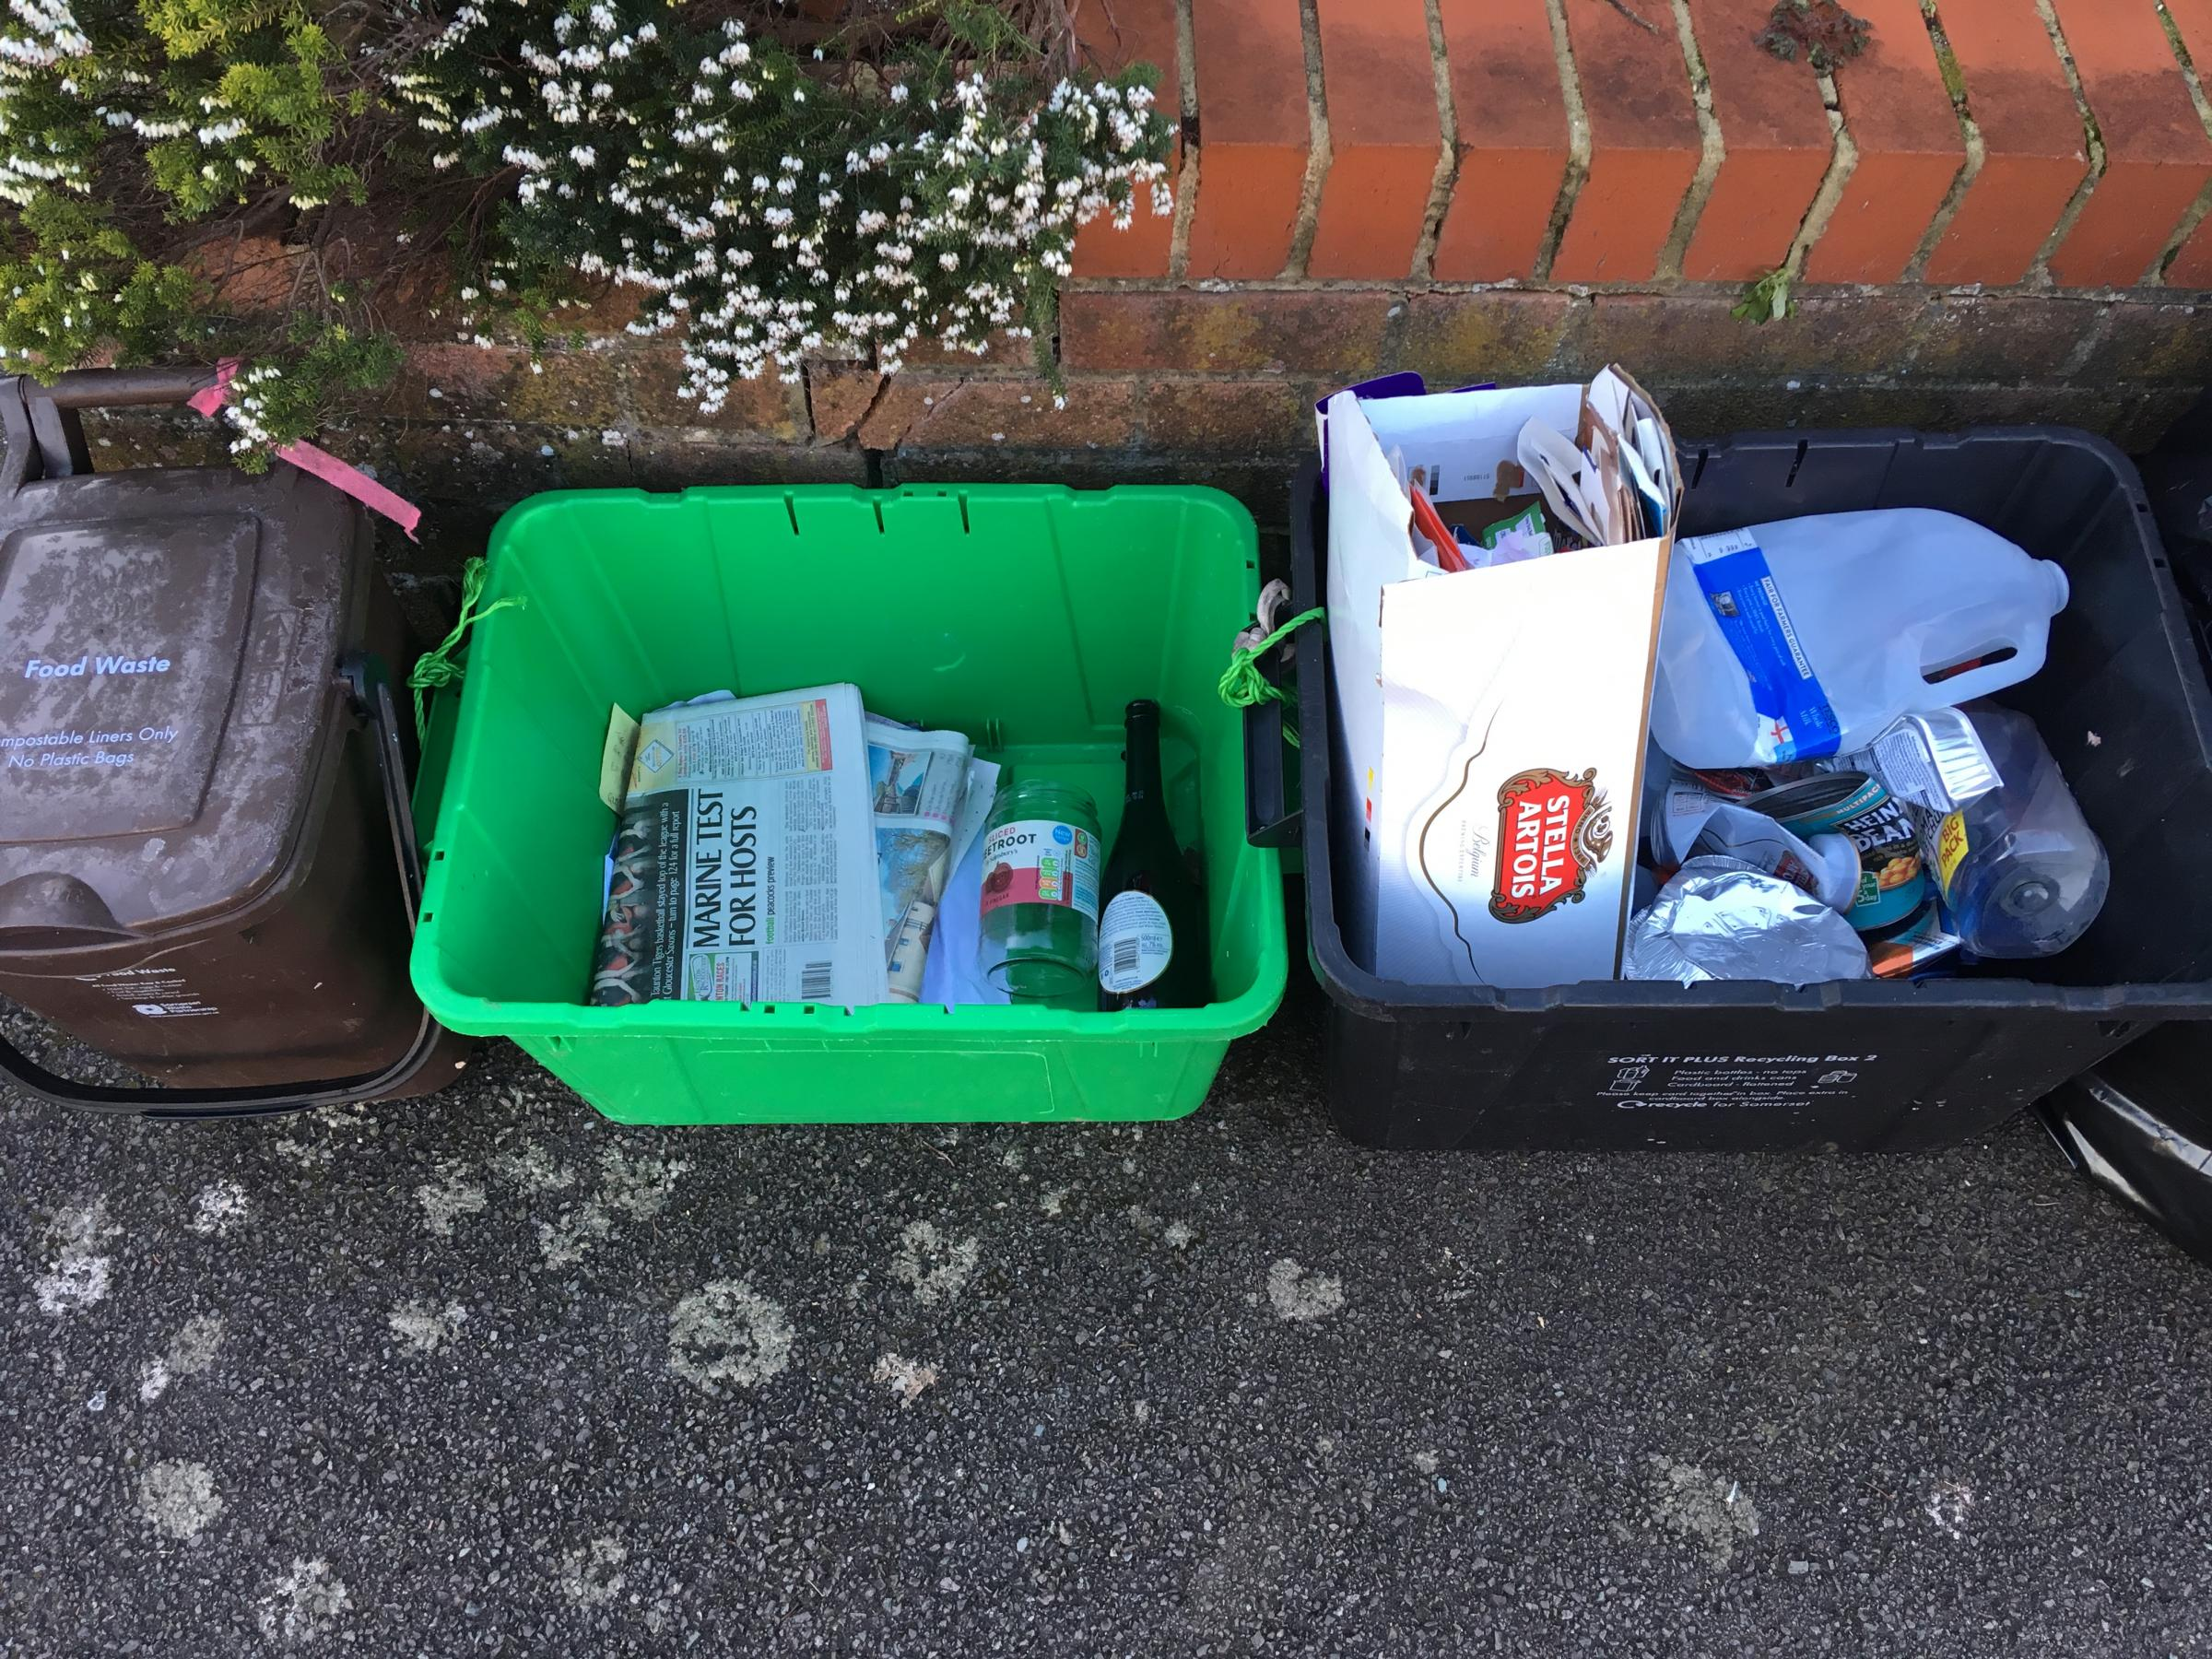 CHANGES: Residents warned of waste collection changes